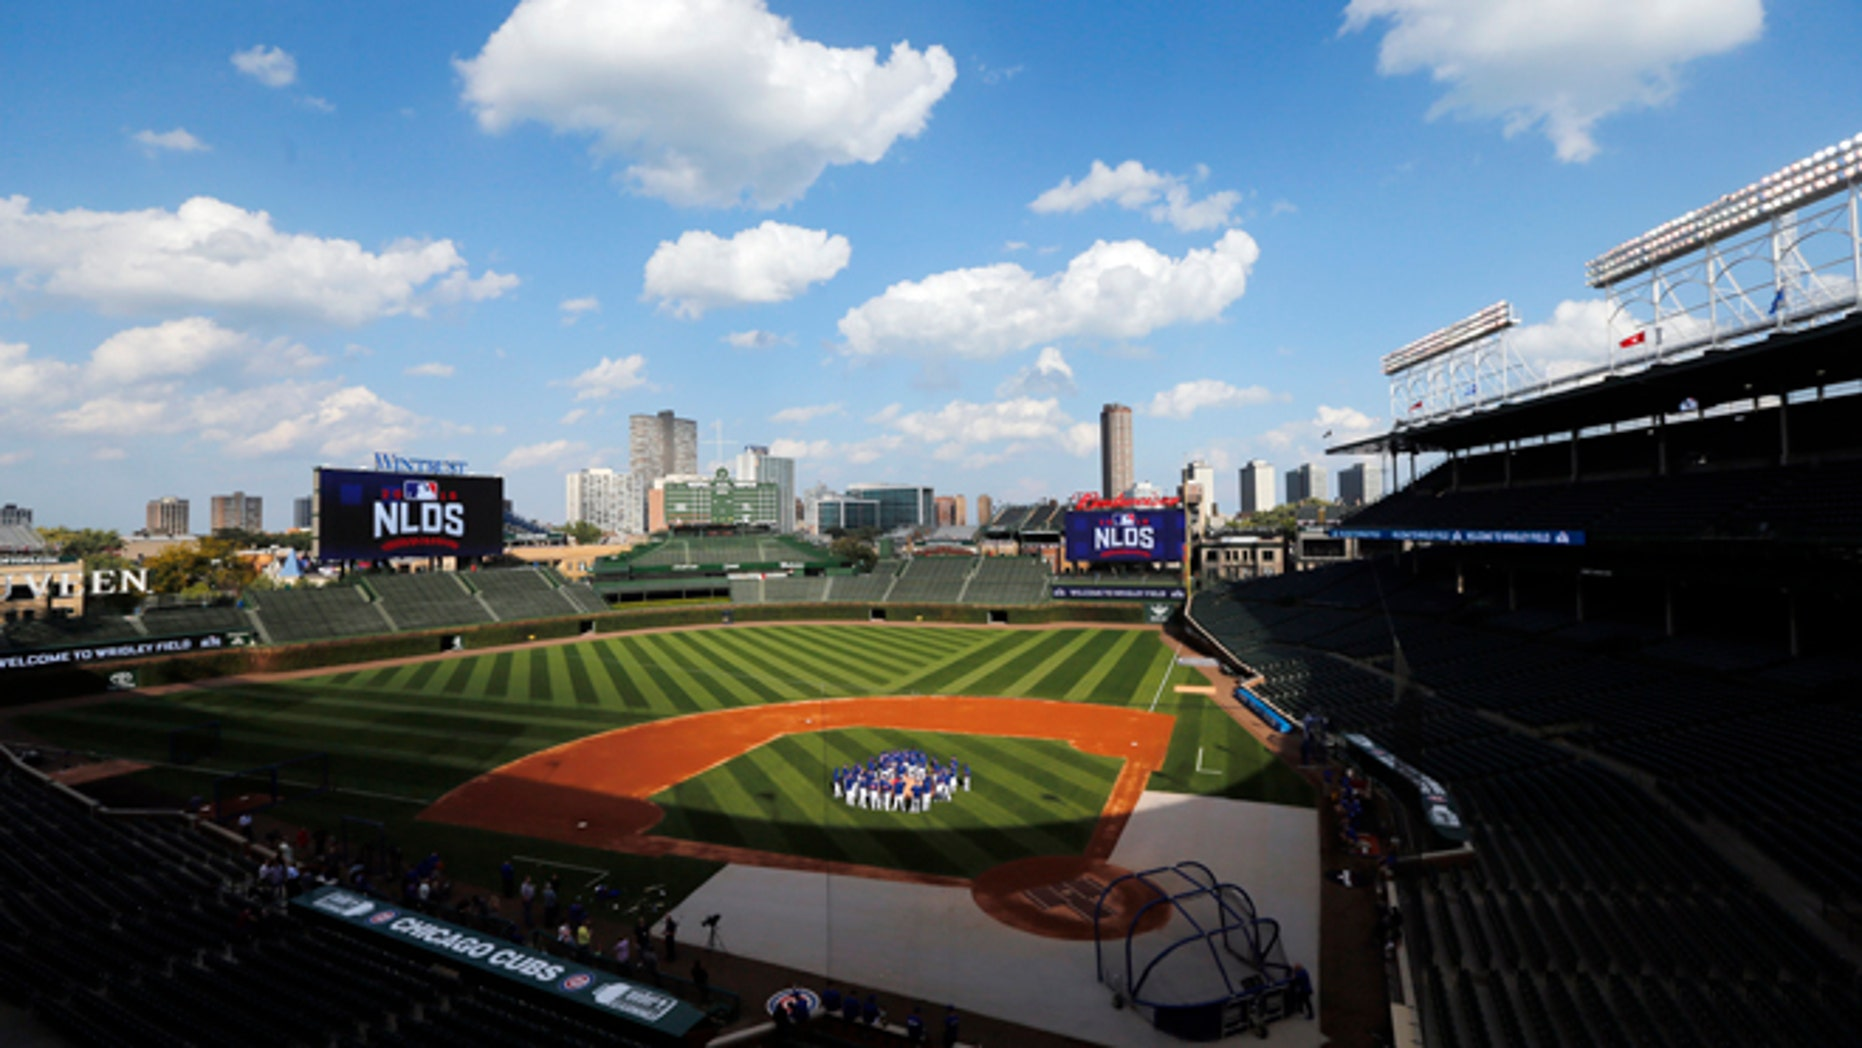 FILE - In this Oct. 5, 2016 file photo, Chicago Cubs players gather around manager manager Joe Maddon on the mound at Wrigley Field as they prepare for Game 1 of the National League Division Series baseball game, in Chicago.